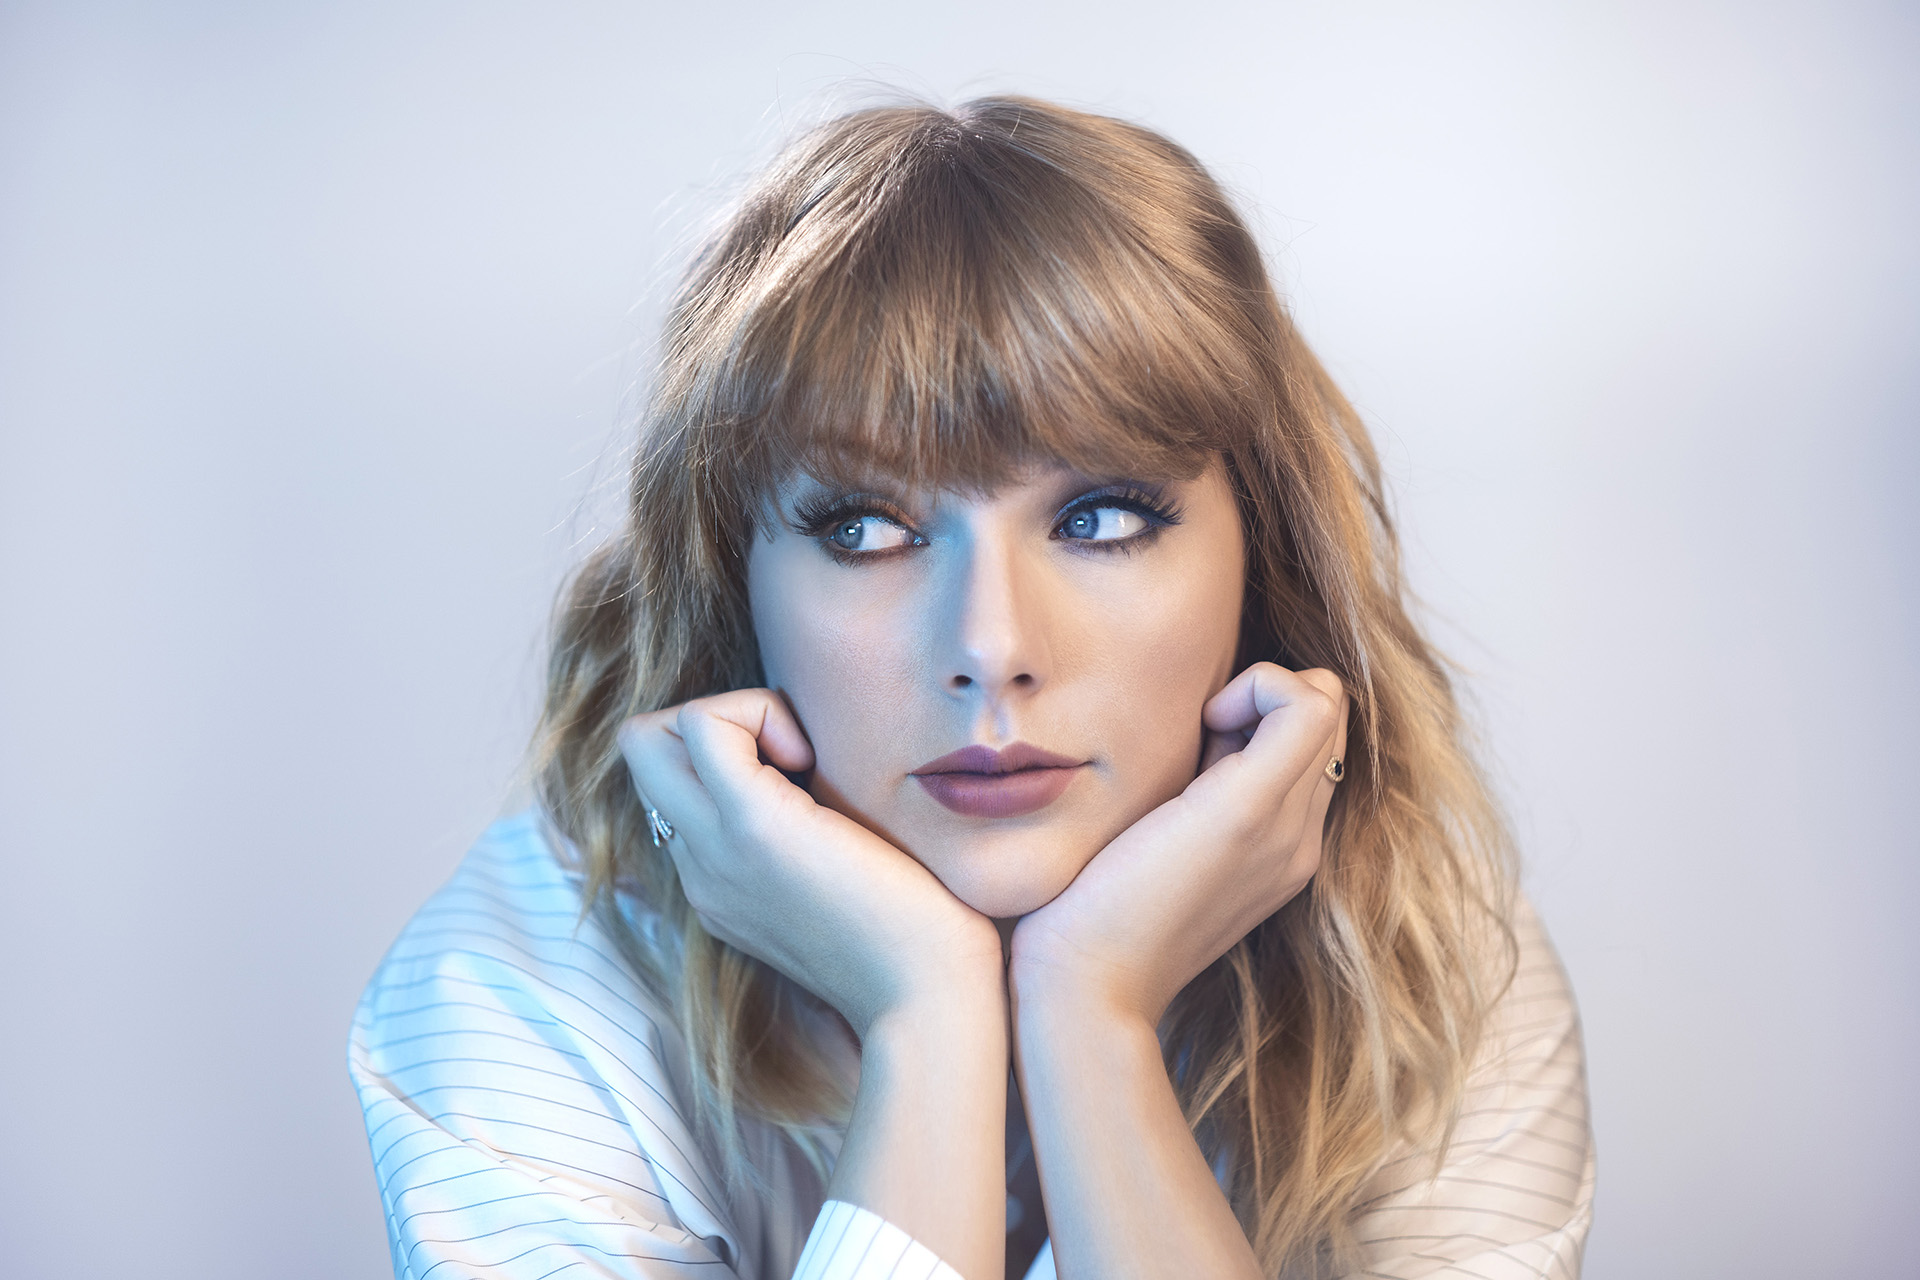 2018 taylor swift, hd music, 4k wallpapers, images, backgrounds